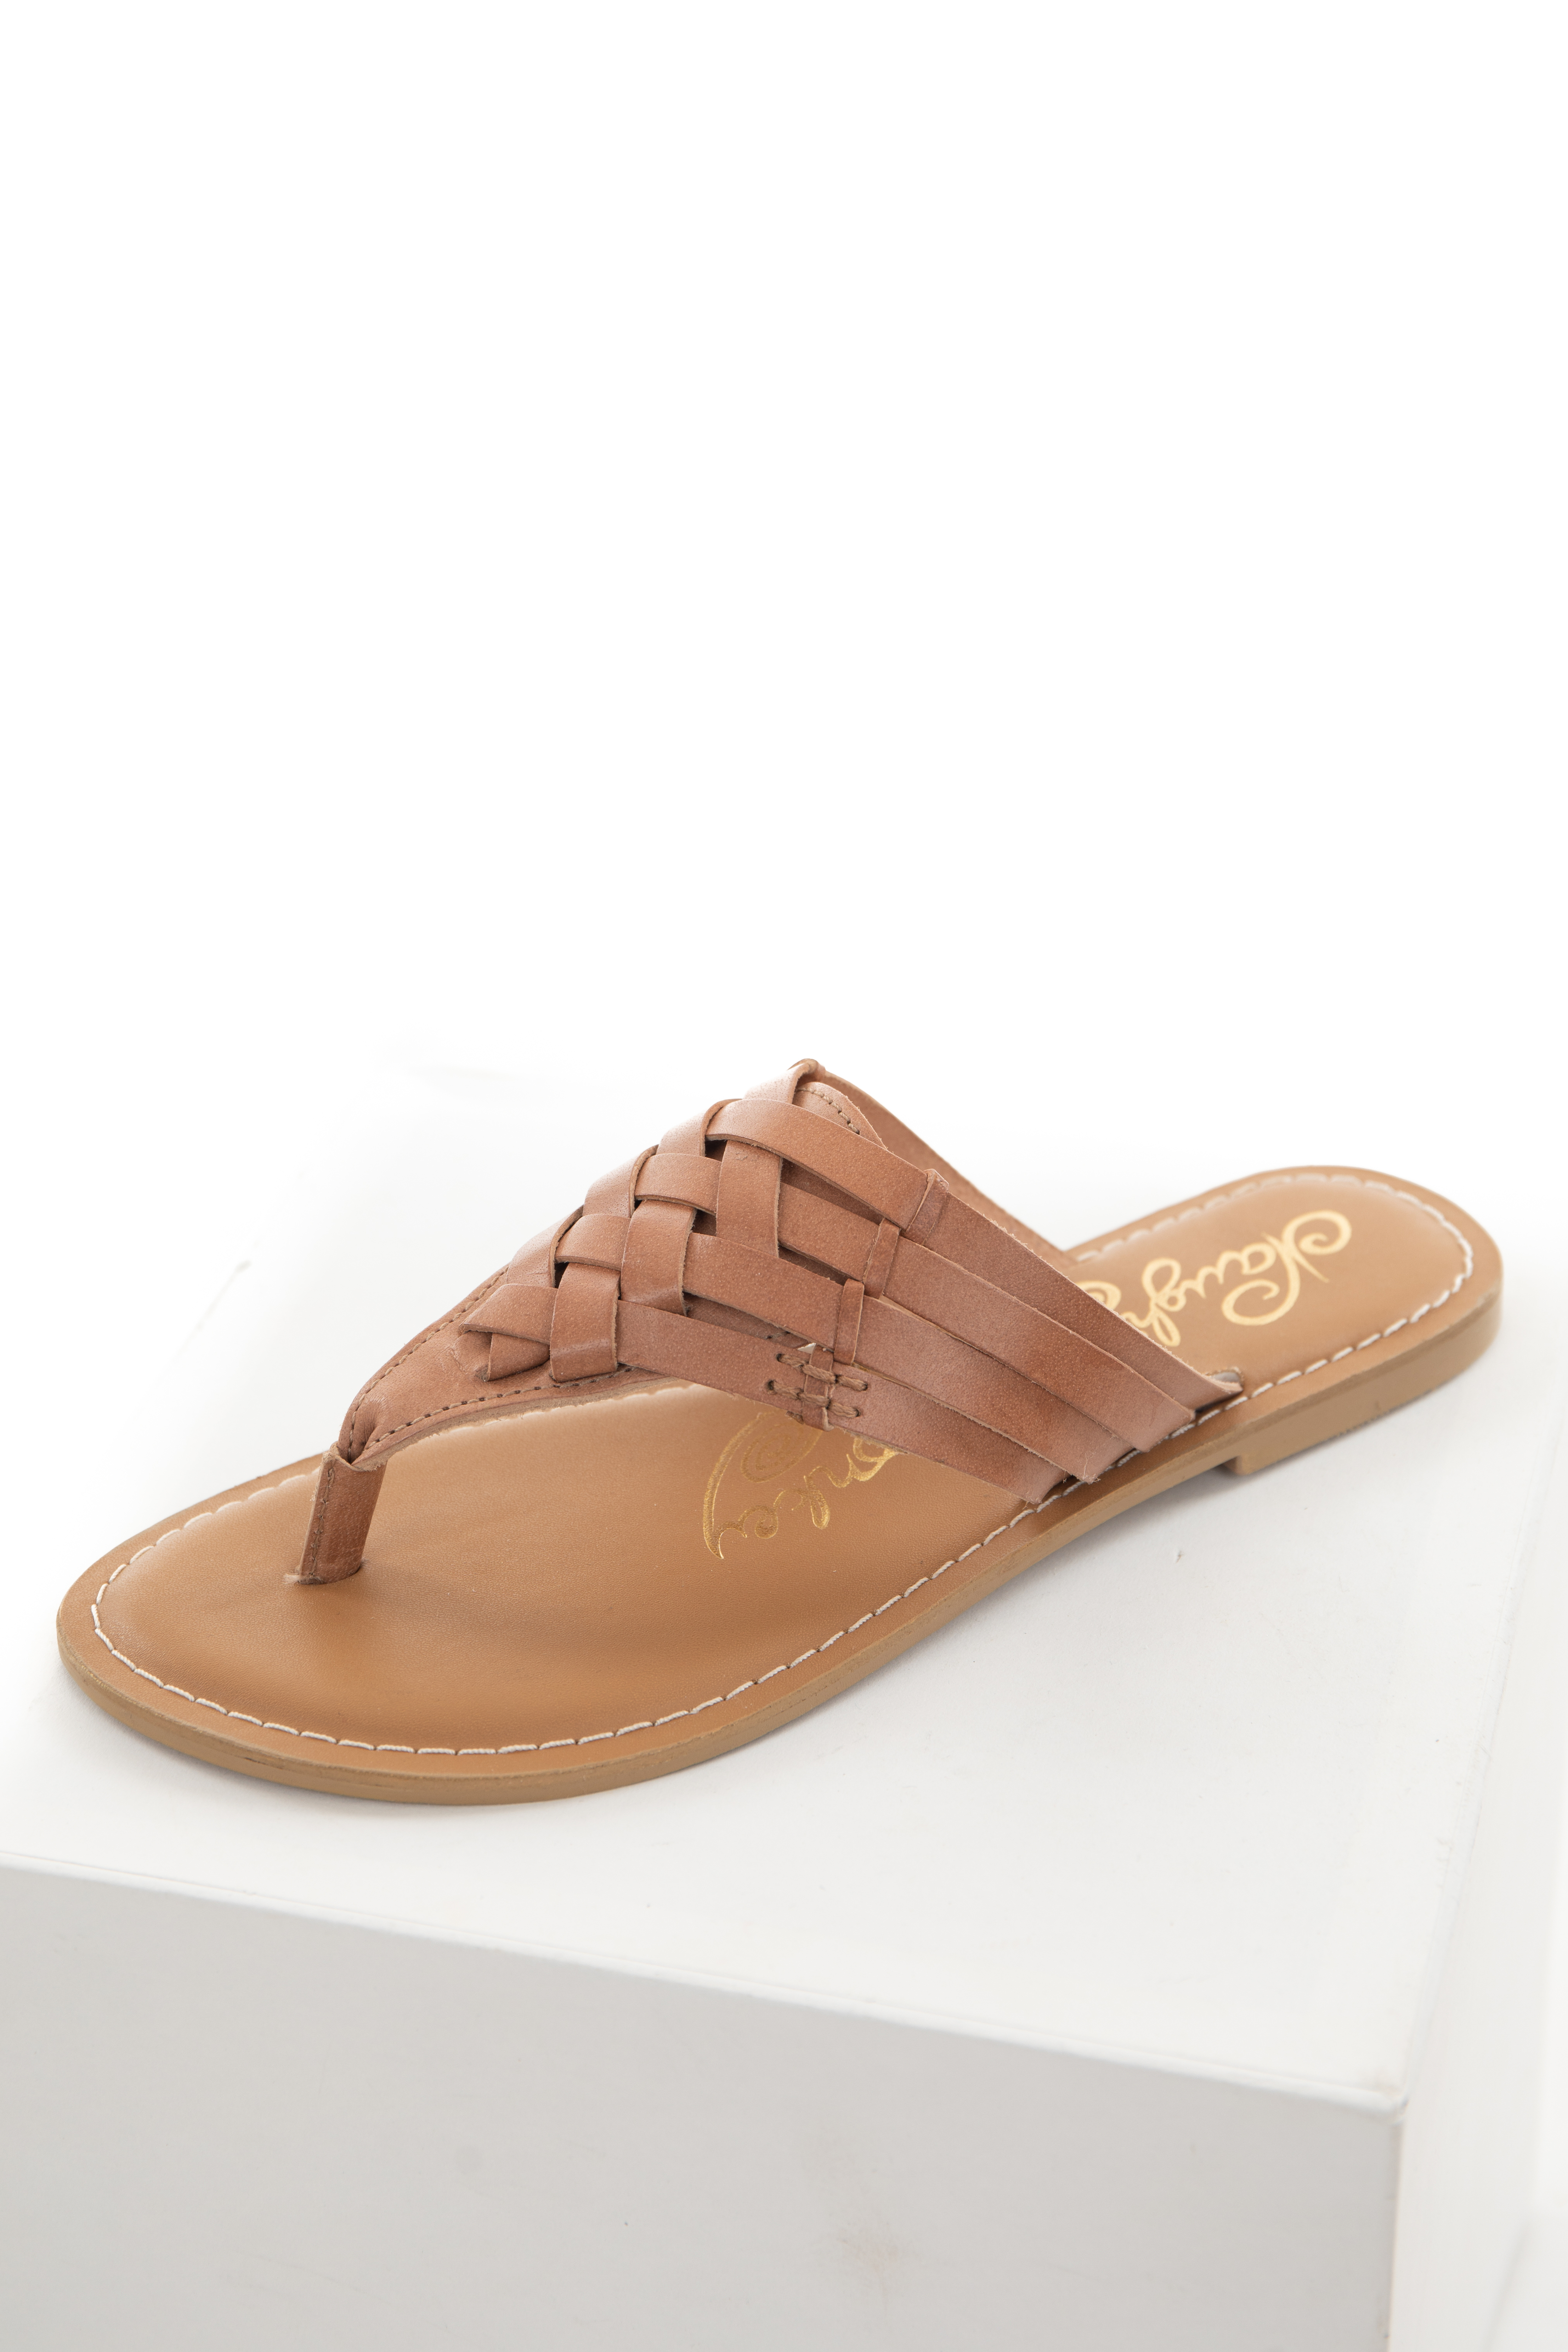 Sienna Strappy Genuine Leather Thong Sandals